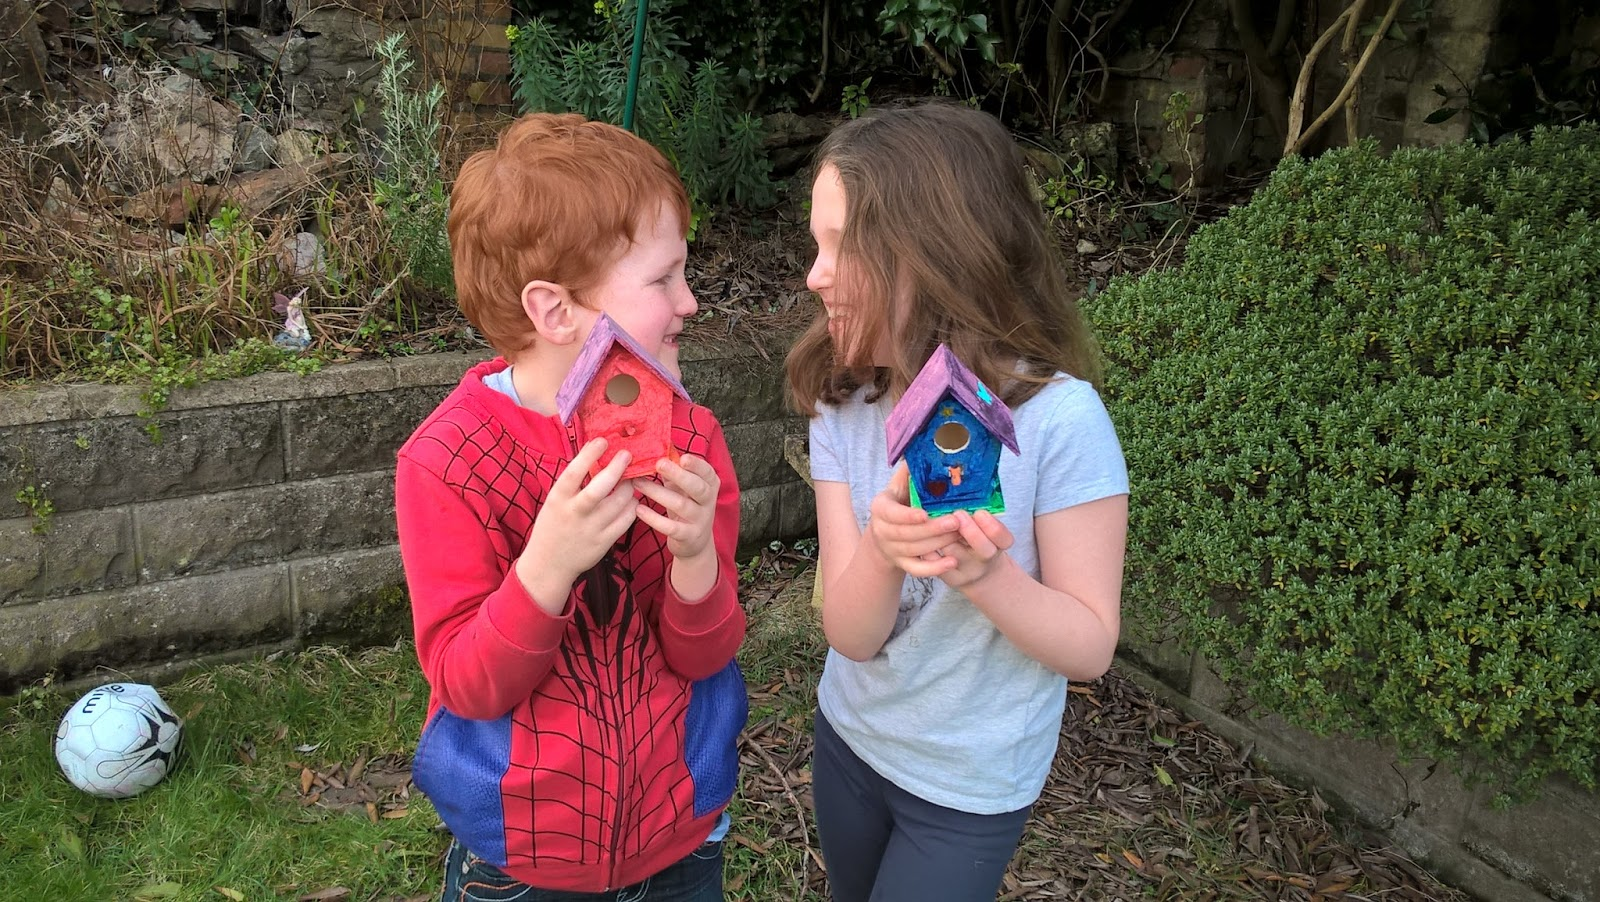 Caitlin & Ieuan Hobbis with mini bird houses in the garden - Surcare Help A Hand Challenge - motherdistracted.co.uk